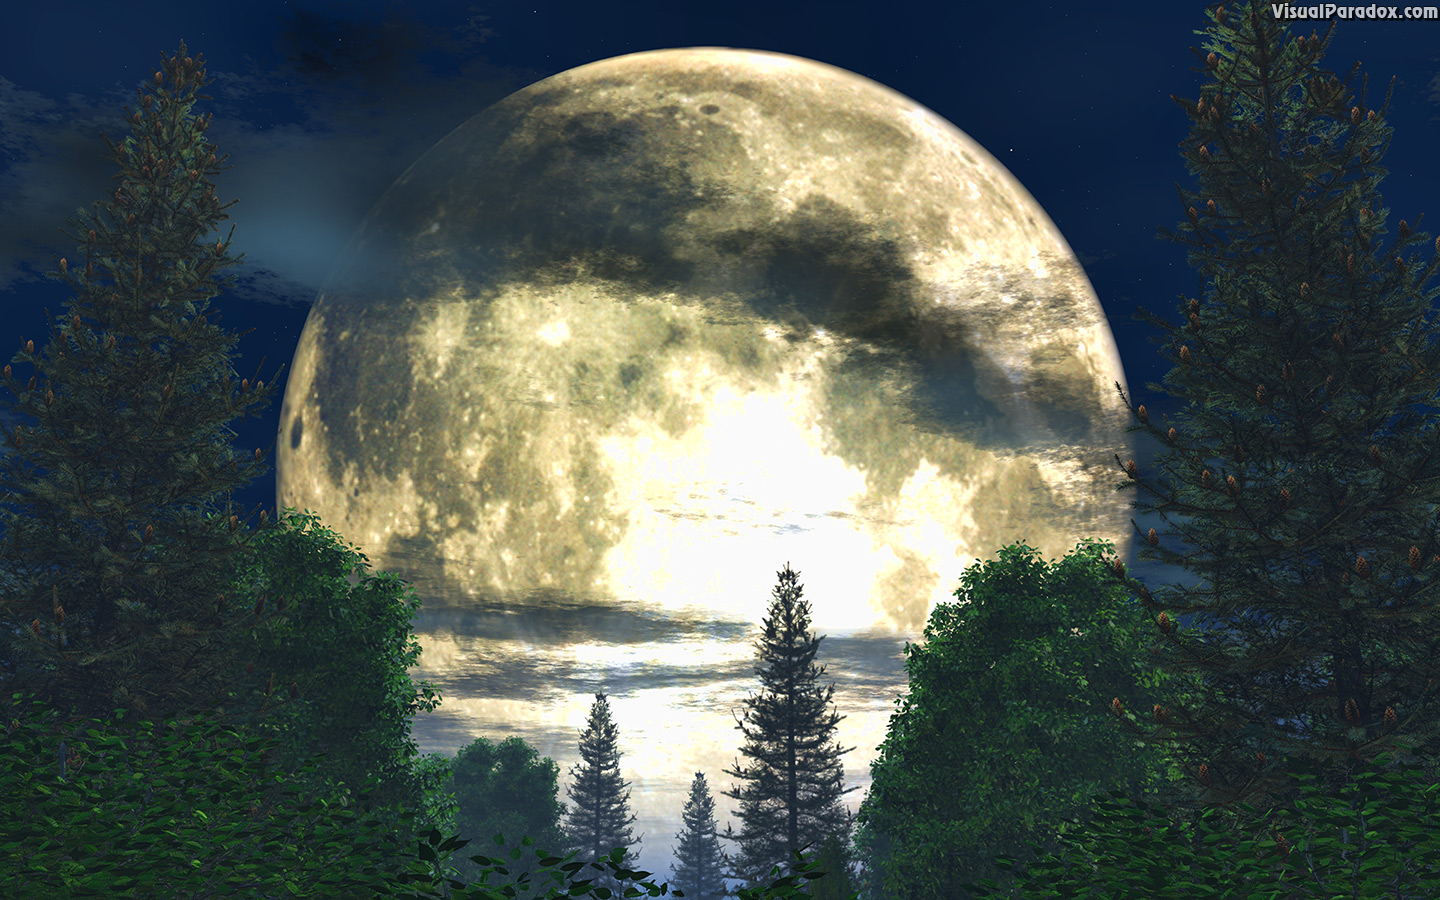 atmospheric, background, backlit, beautiful, beauty, blue, branch, bright, clouds, country, dark, dramatic, forest, fullmoon, glowing, illustration, landscape, light, luna, lunar, mist, moon, moonlight, moonlit, nature, night, outdoors, pine, round, scene, serenity, shadow, silent, sky, stars, tree, view, white, wood, woods, 3d, wallpaper